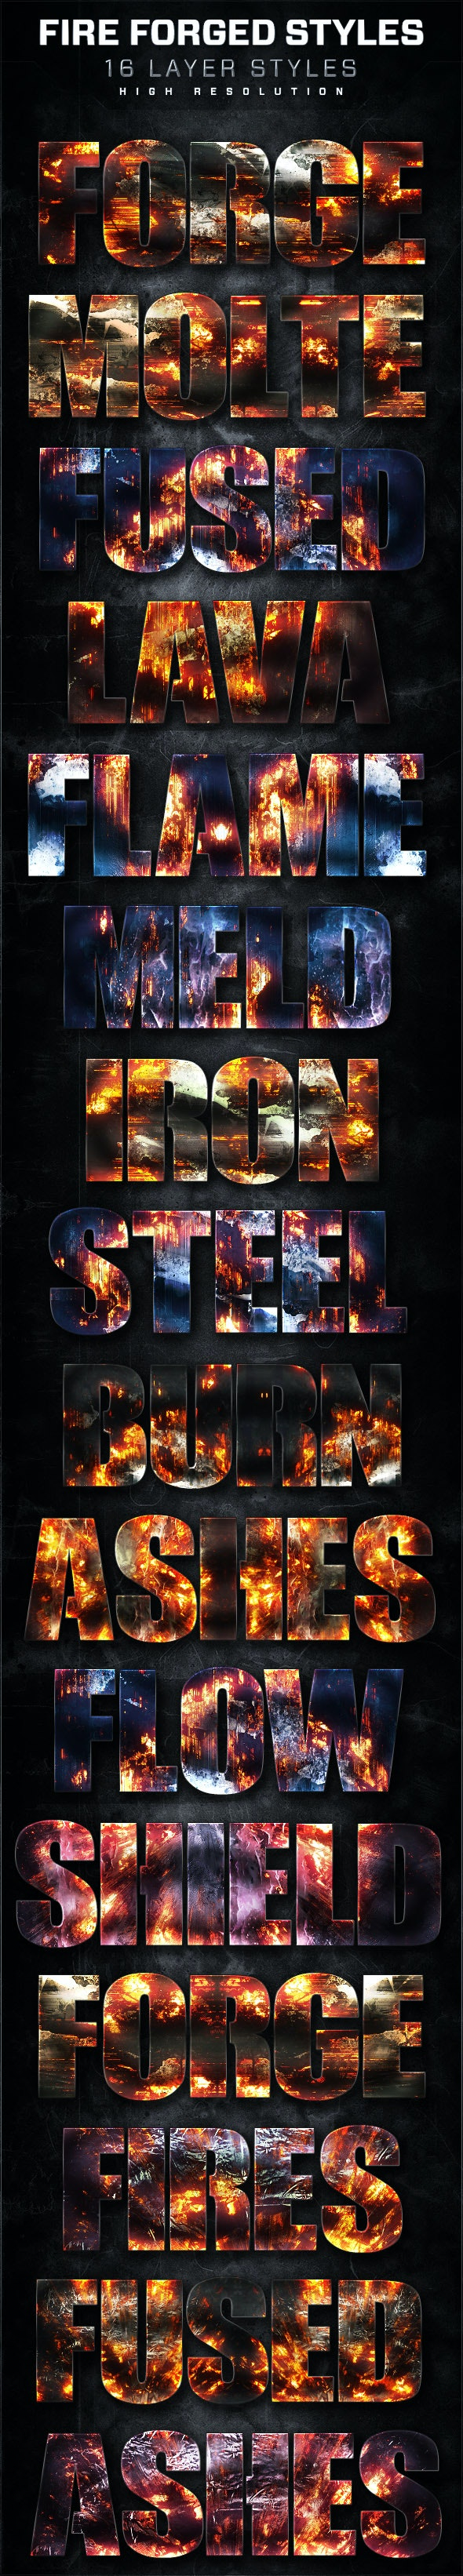 16 Fire Forged Layer Styles Volume 8 - Text Effects Styles